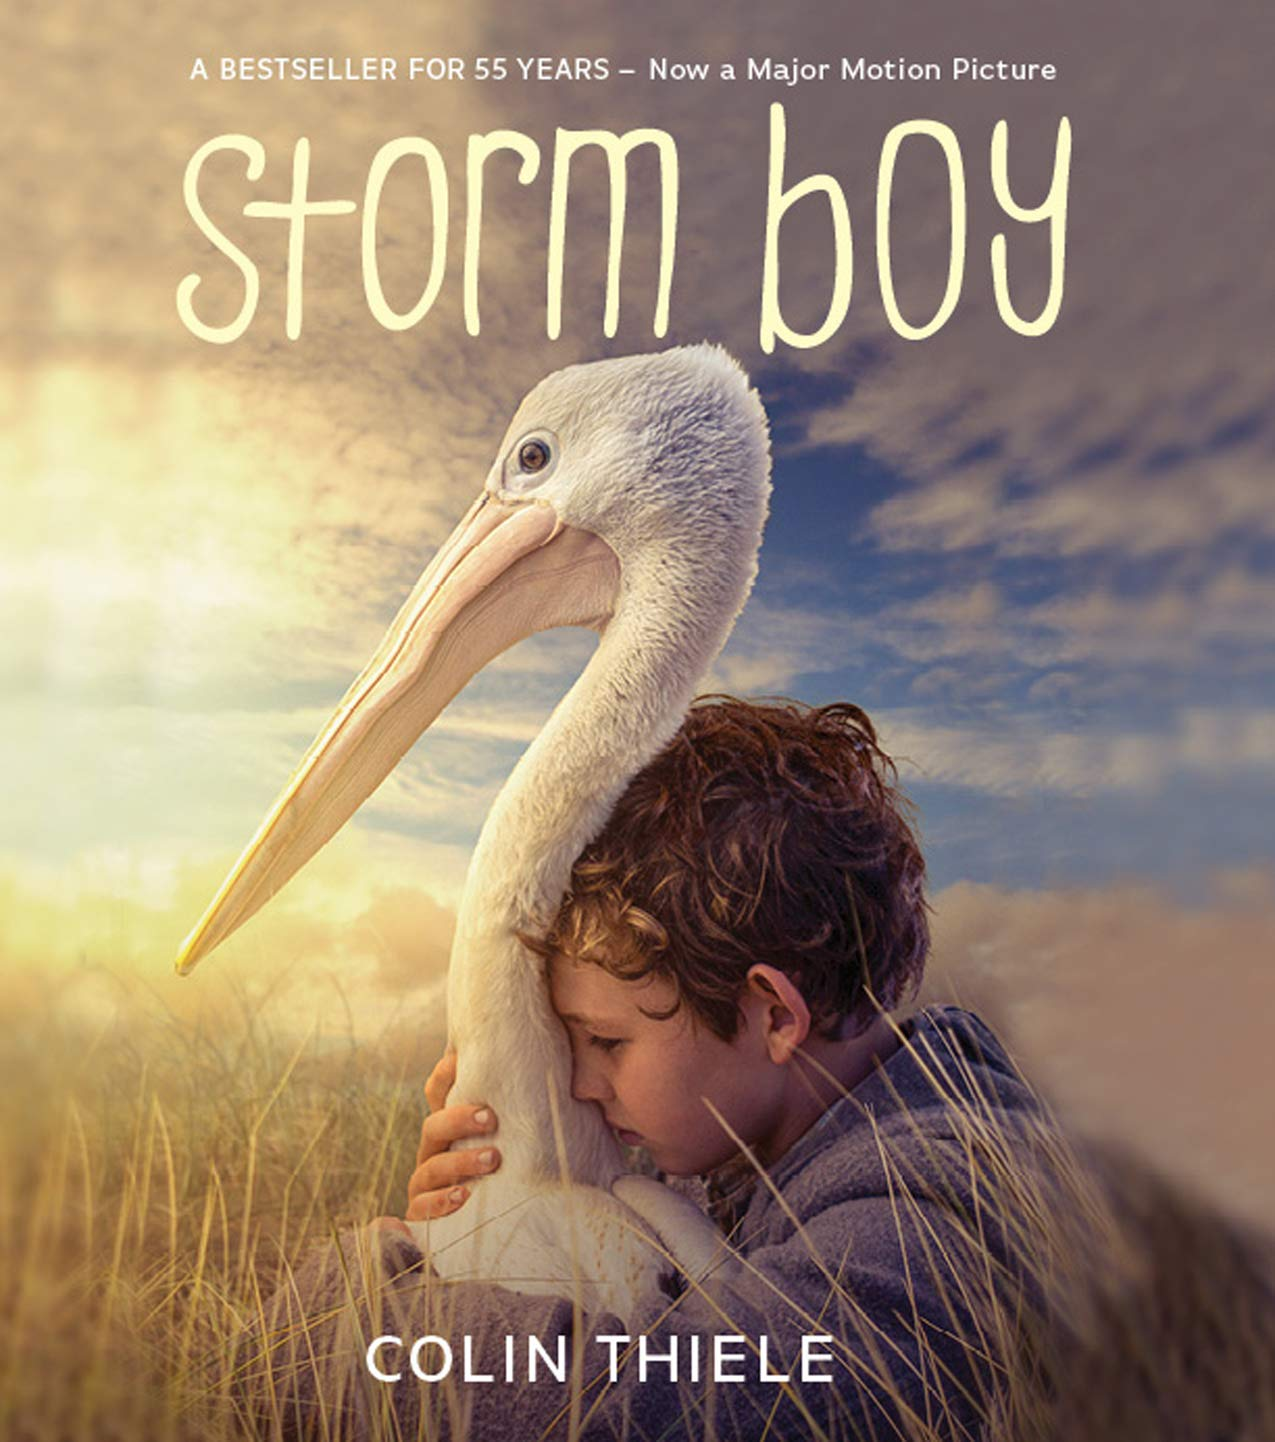 Searching For Storm Boy!